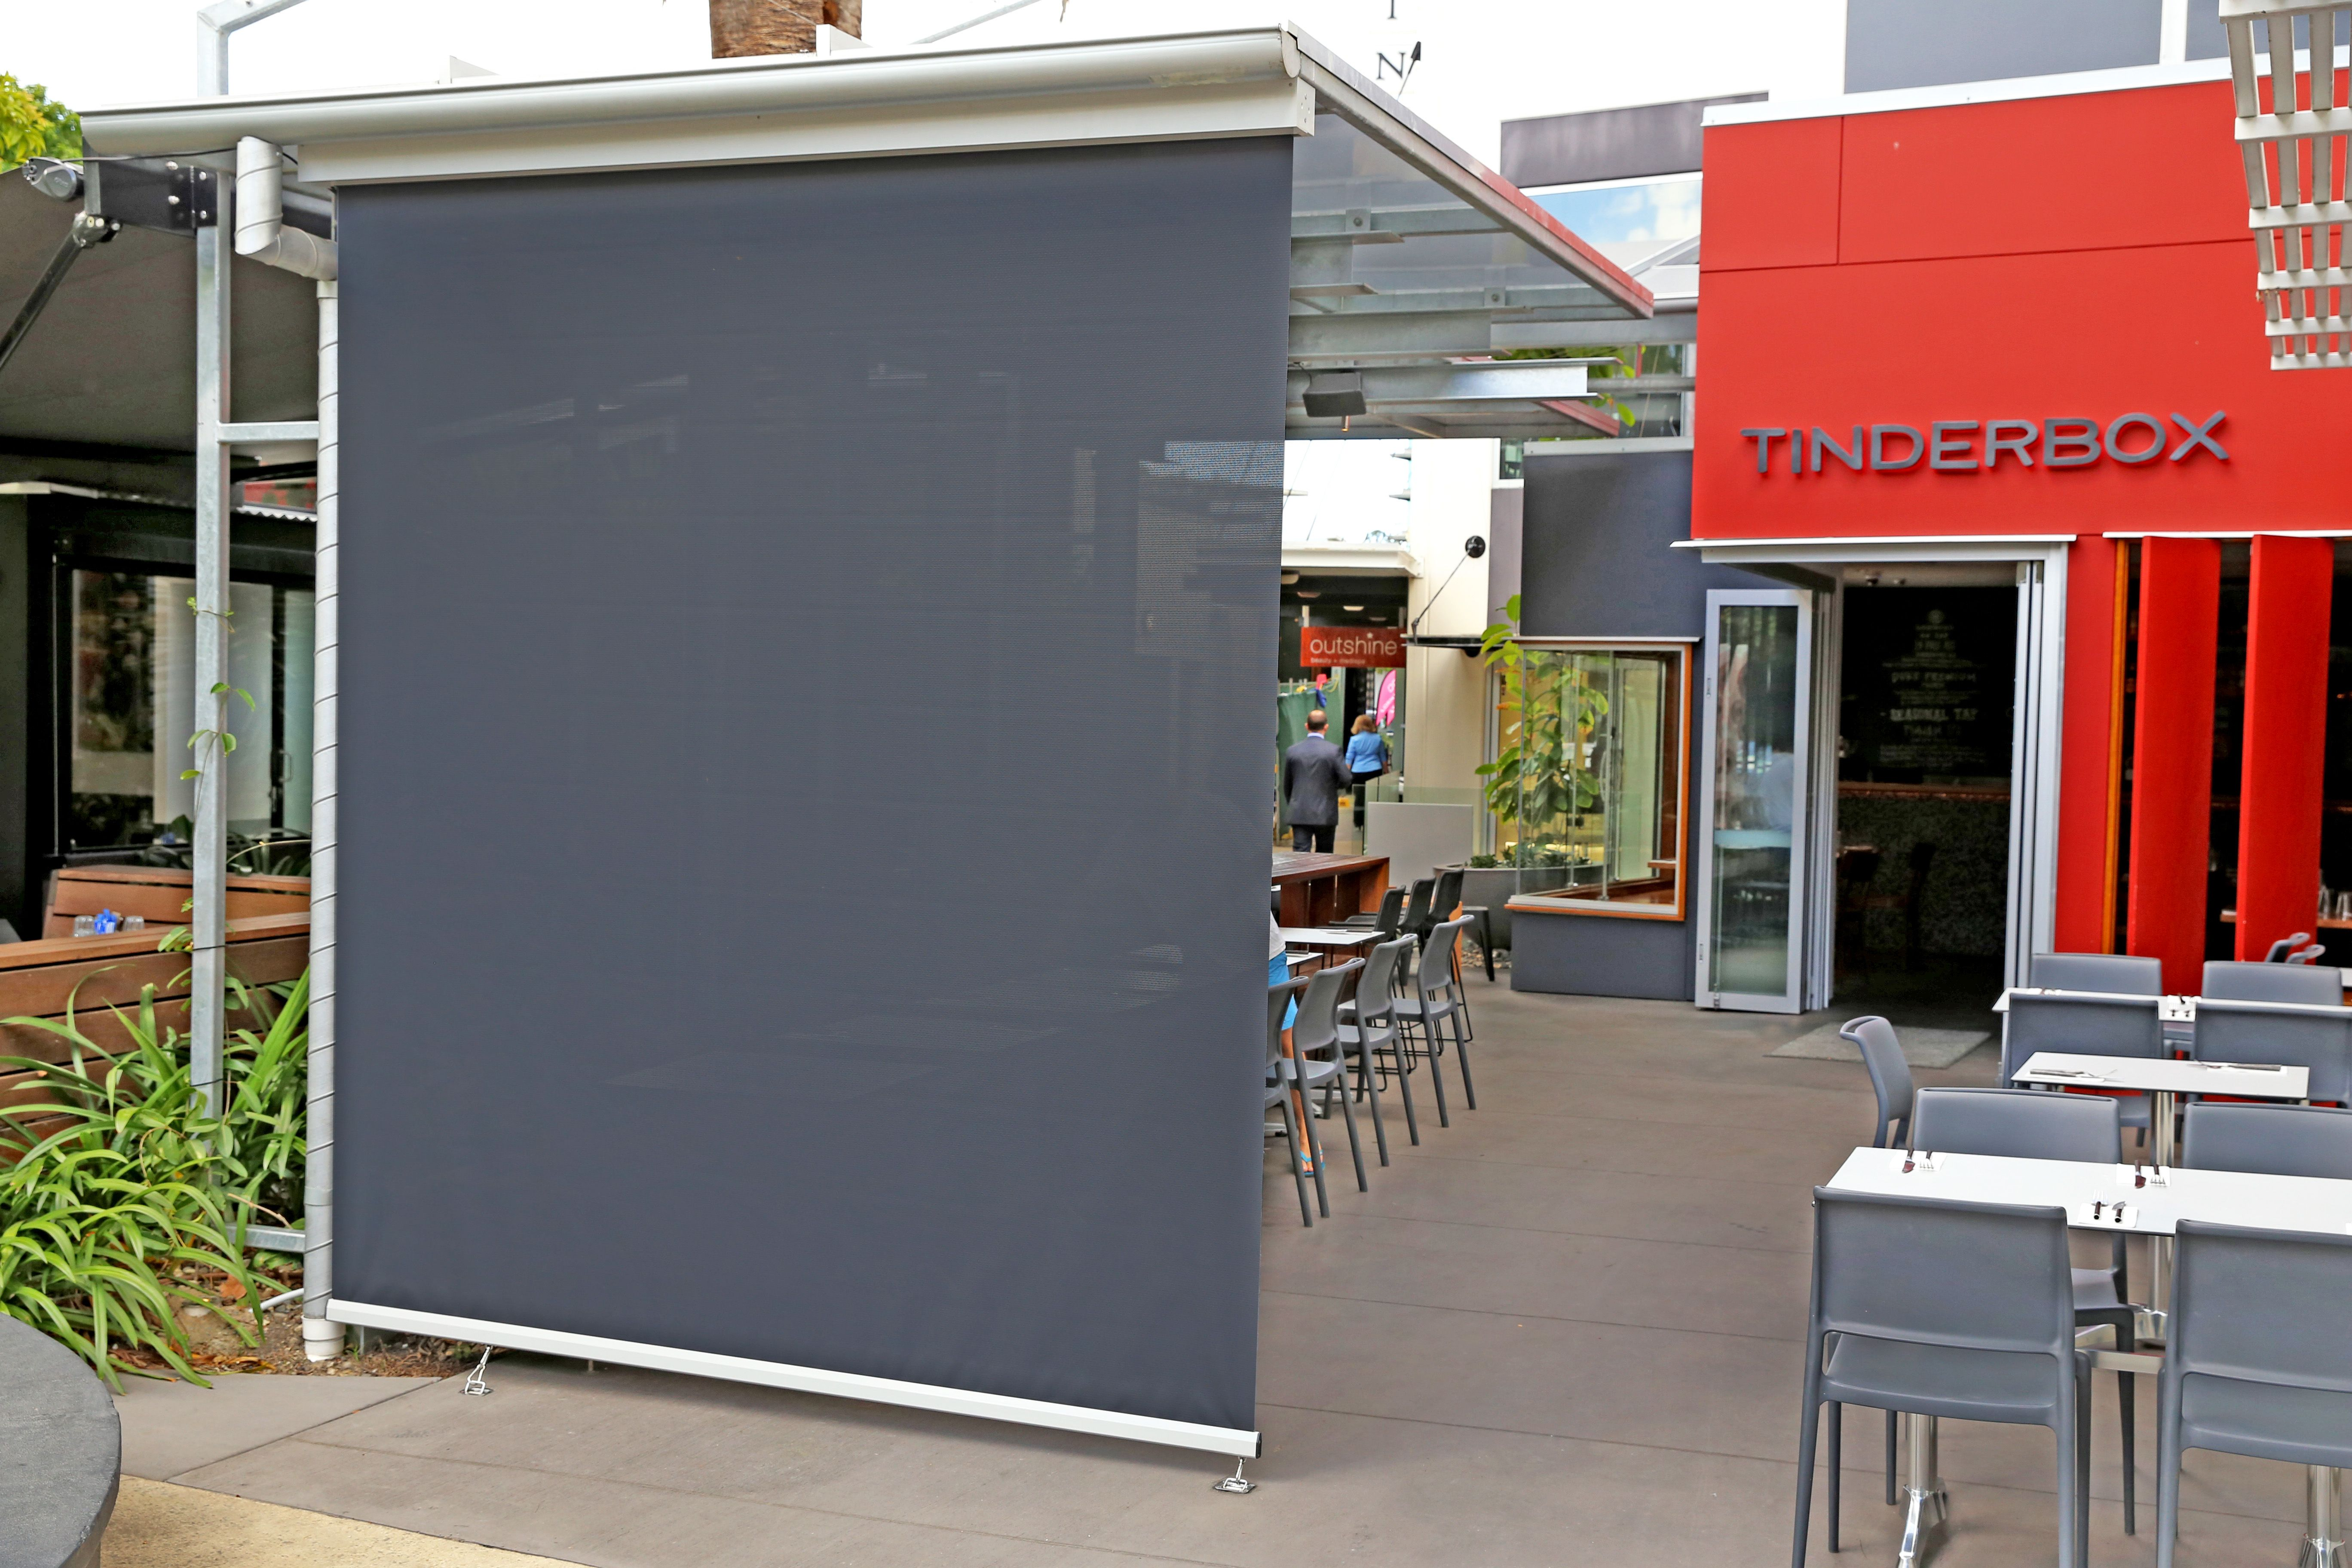 Straight Drop Awning By Vanguard Tinderbox Fortitude Valley